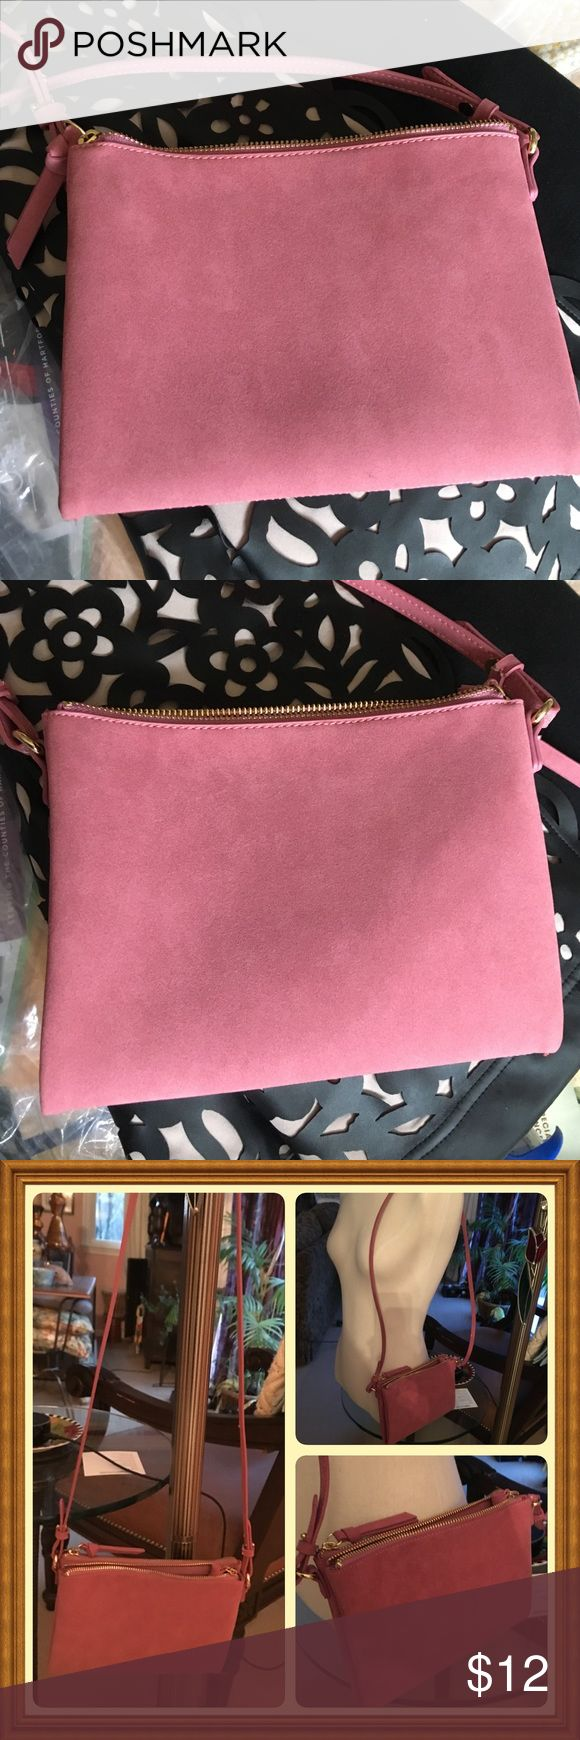 Old Navy Cross body pink suede (like) bag Double zipper compartments. New without tag.  If have kids I have NEW in box Disney figures and many other things not for kids ($11 or less) as free with purchase 💕❣ All my clothes smoke-animal hair-free. Old Navy Bags Crossbody Bags